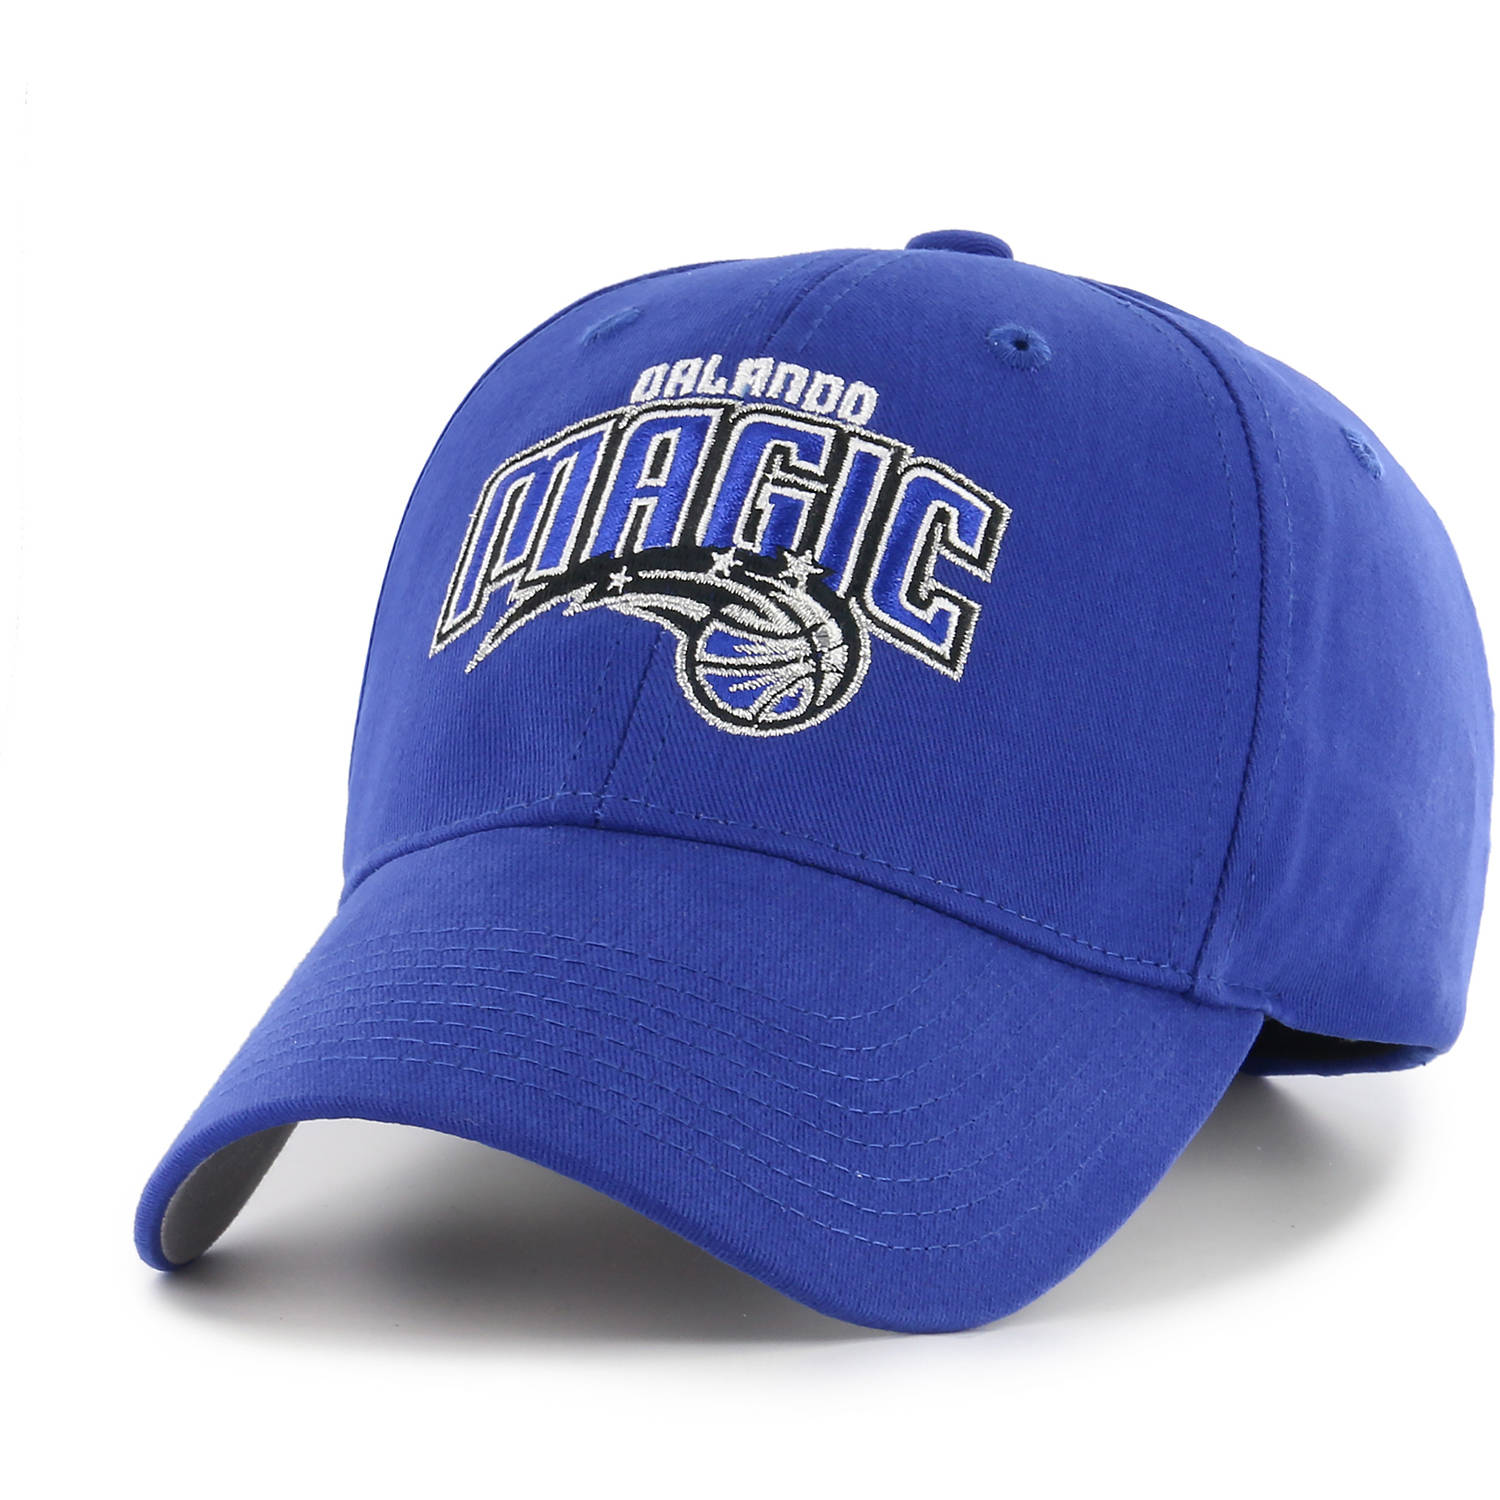 NBA Orlando Magic Basic Cap/Hat - Fan Favorite